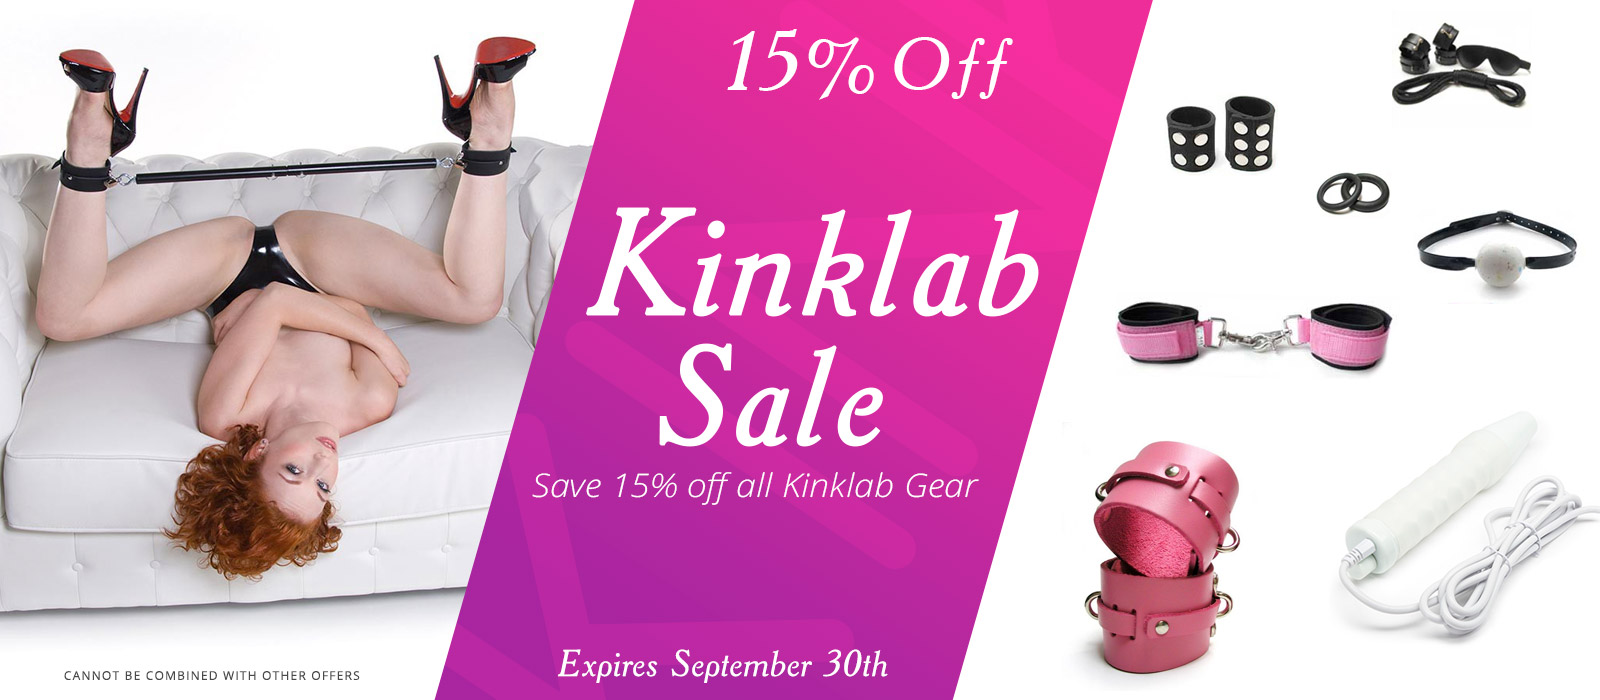 Bondage Fetish Store Sale 15% off